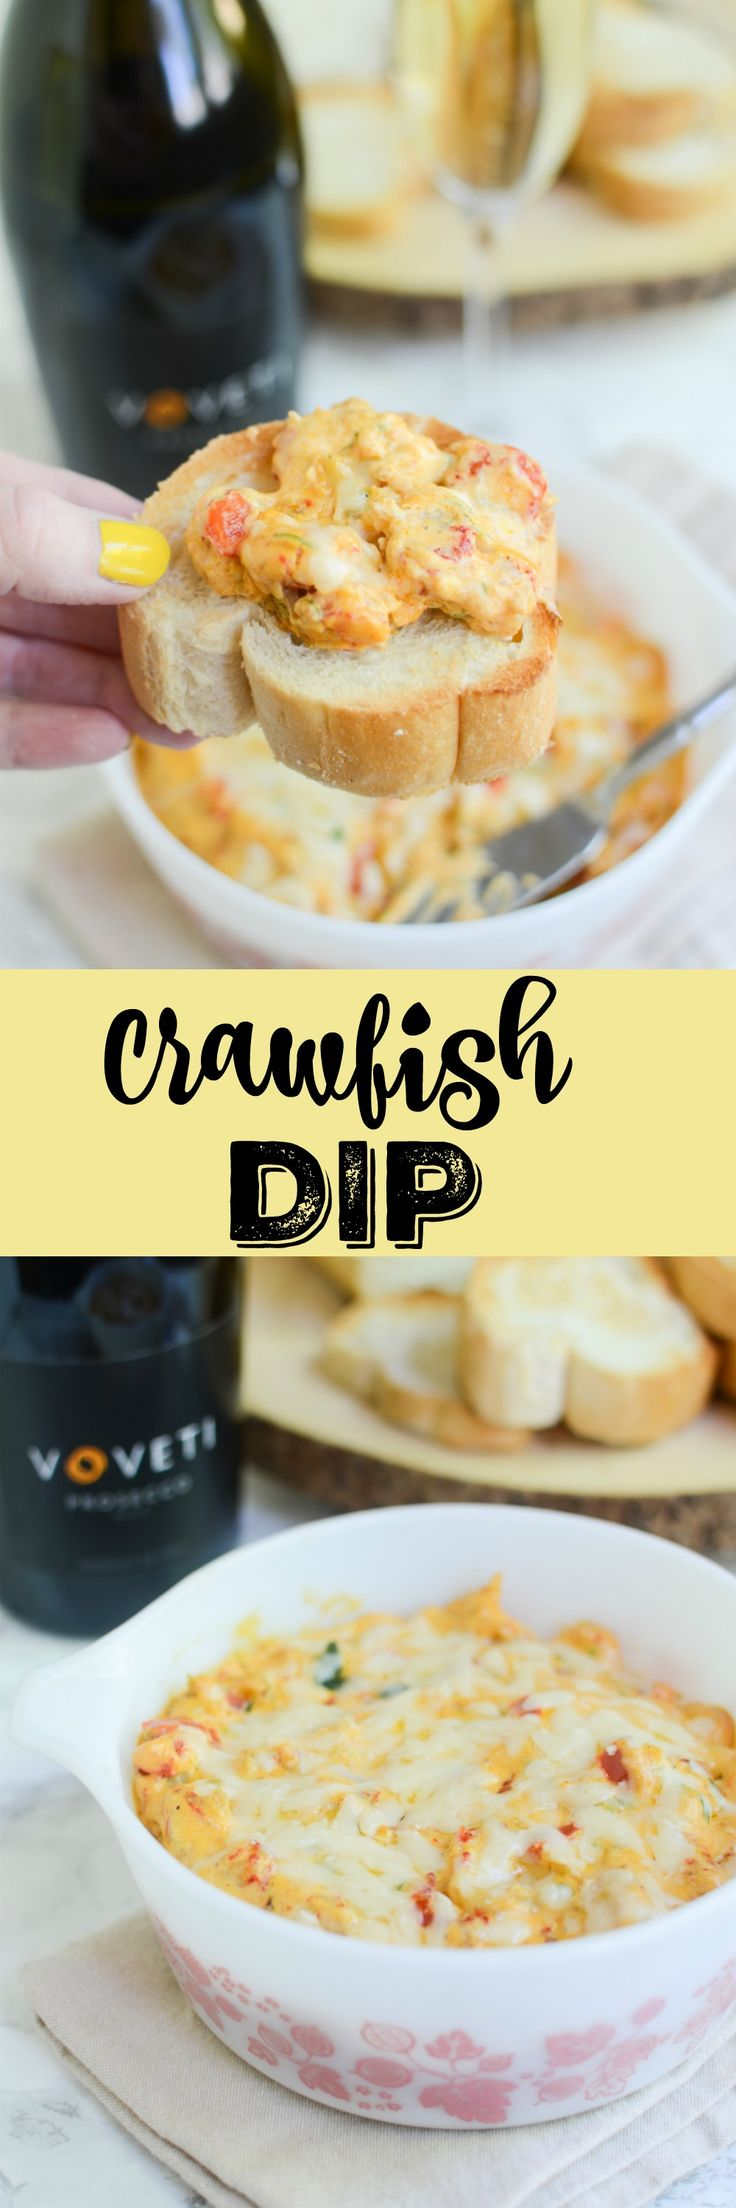 Crawfish Dip - perfect for your next party! Serve on sliced baguette or crackers.